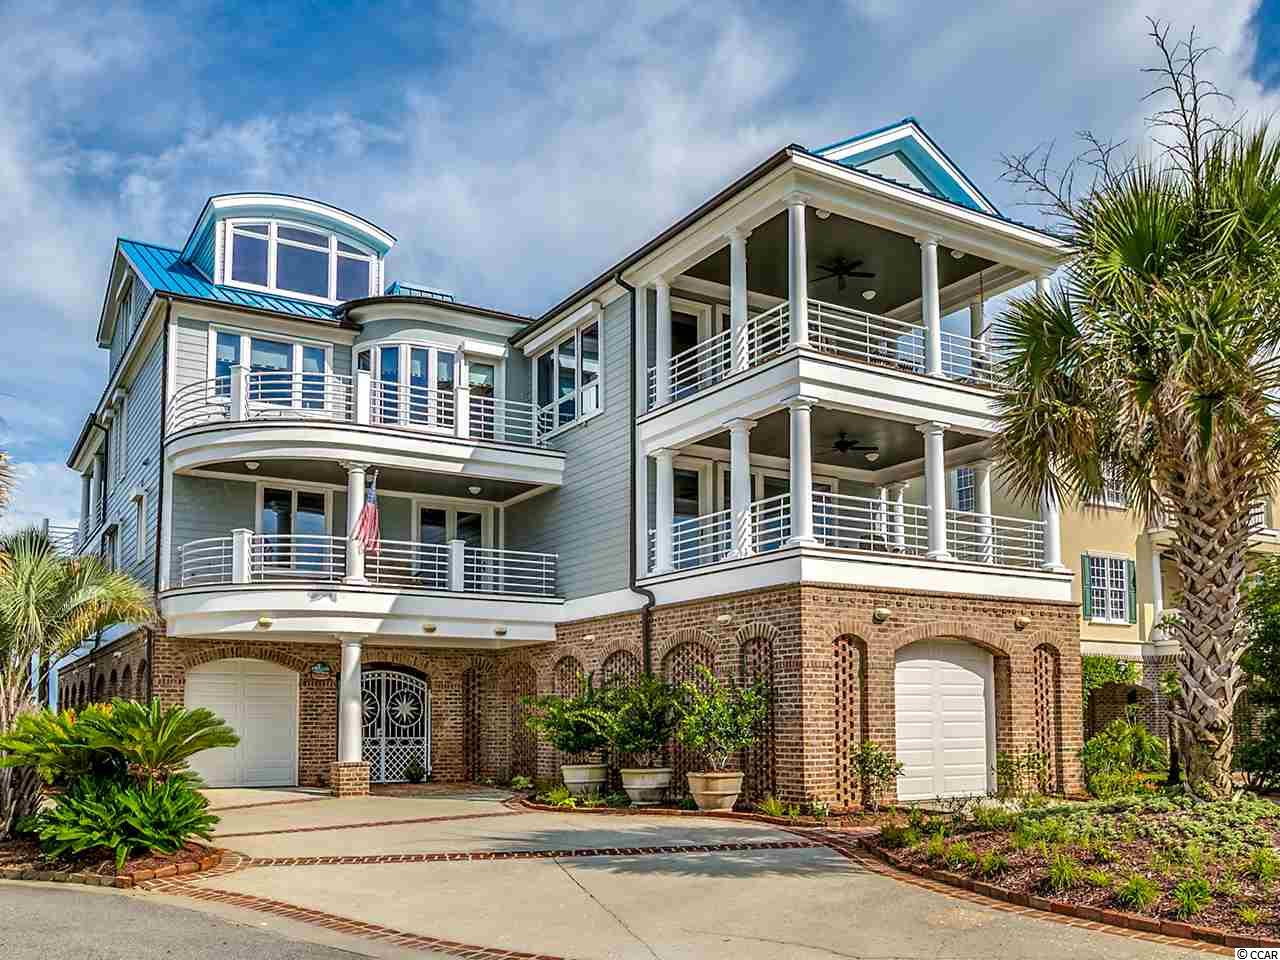 1101 Norris Dr., Pawleys Island, South Carolina